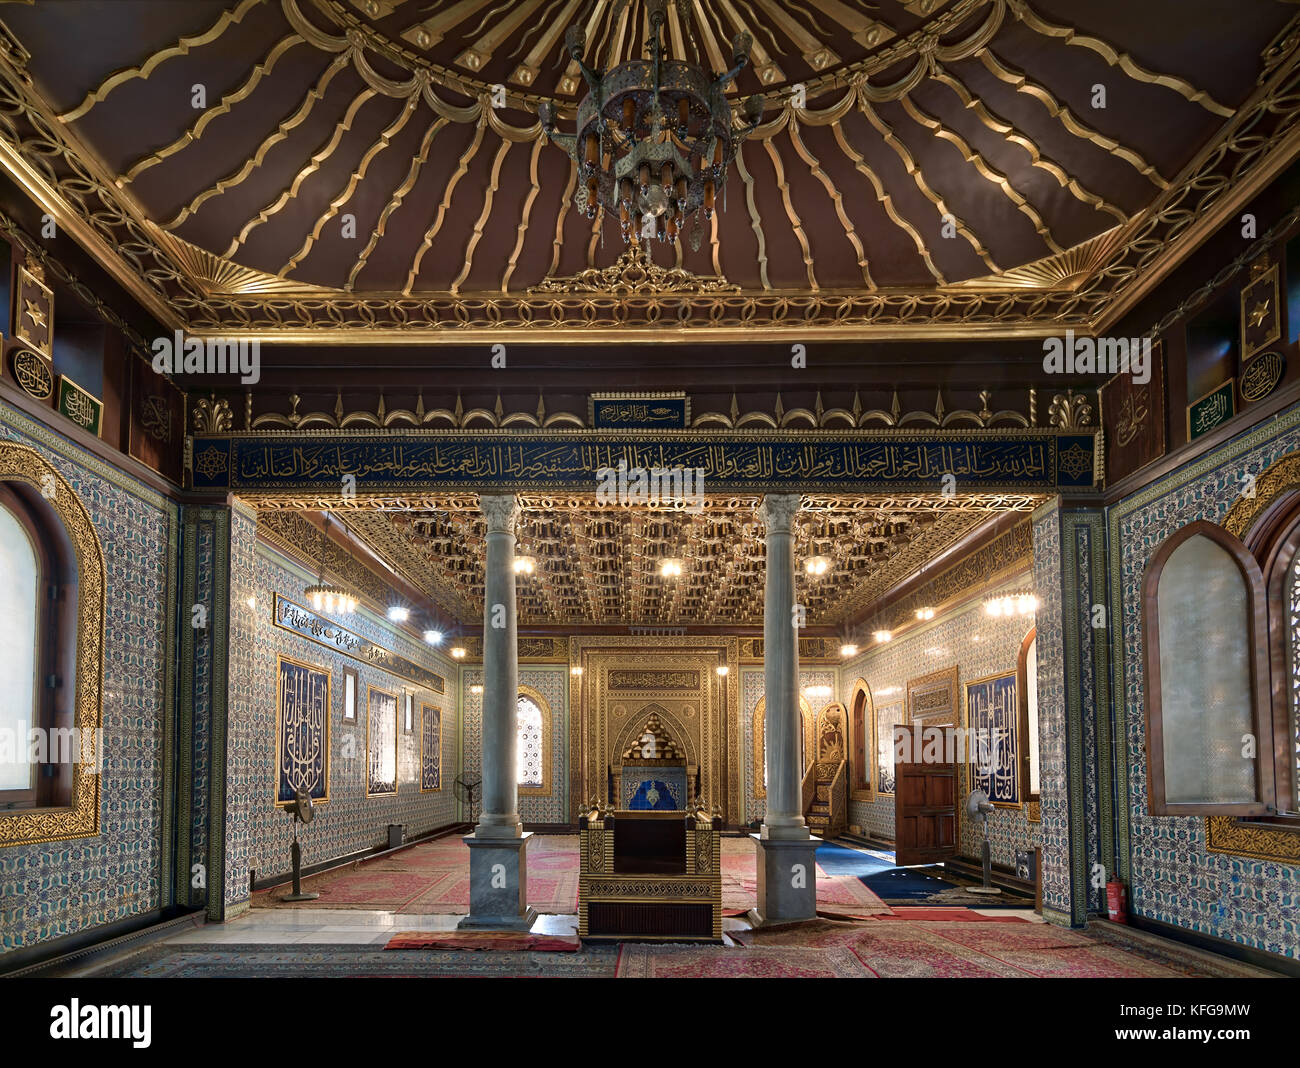 Interior of public mosque of Manial Palace of Prince Mohammed Ali Tewfik with wooden golden ornate ceilings with - Stock Image